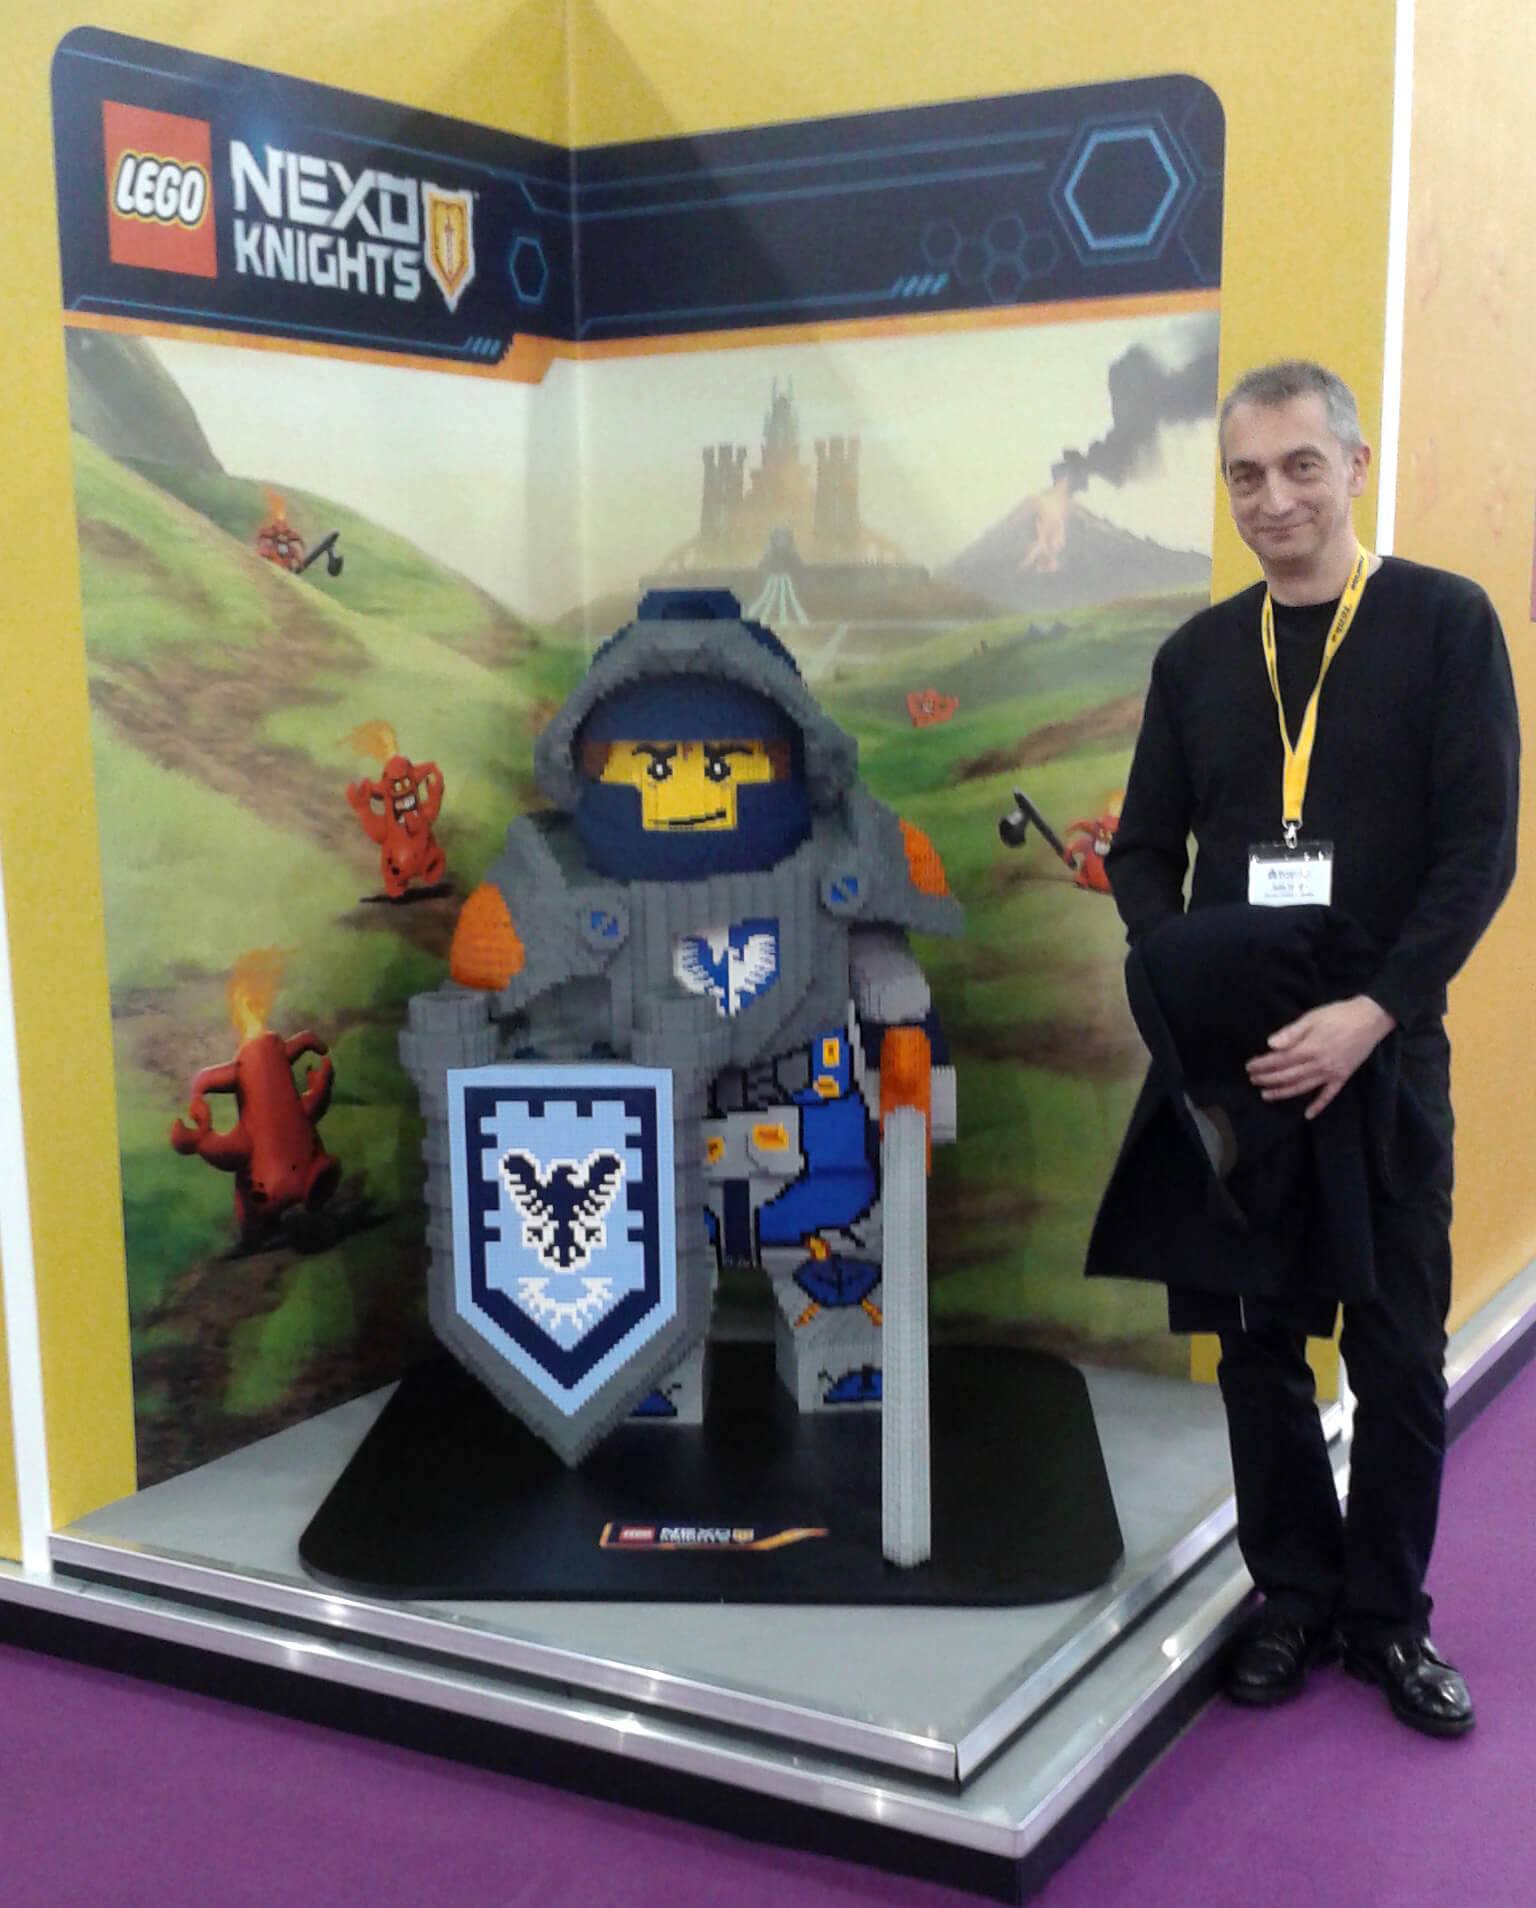 Adie Hardy standing next to a Lego display at The Toy Fair 2016 image